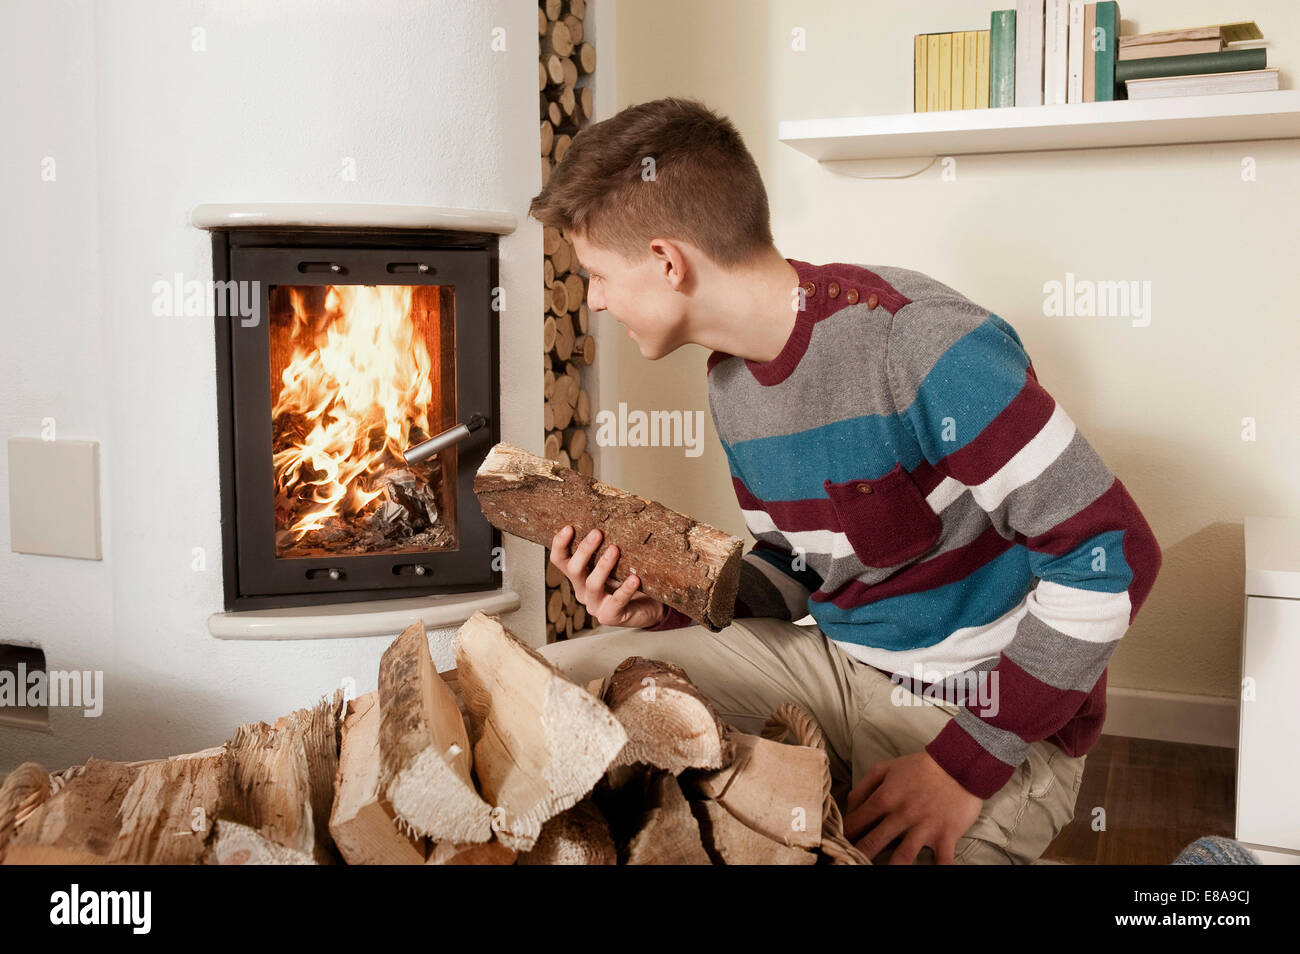 Teenage boy in front of fireside - Stock Image